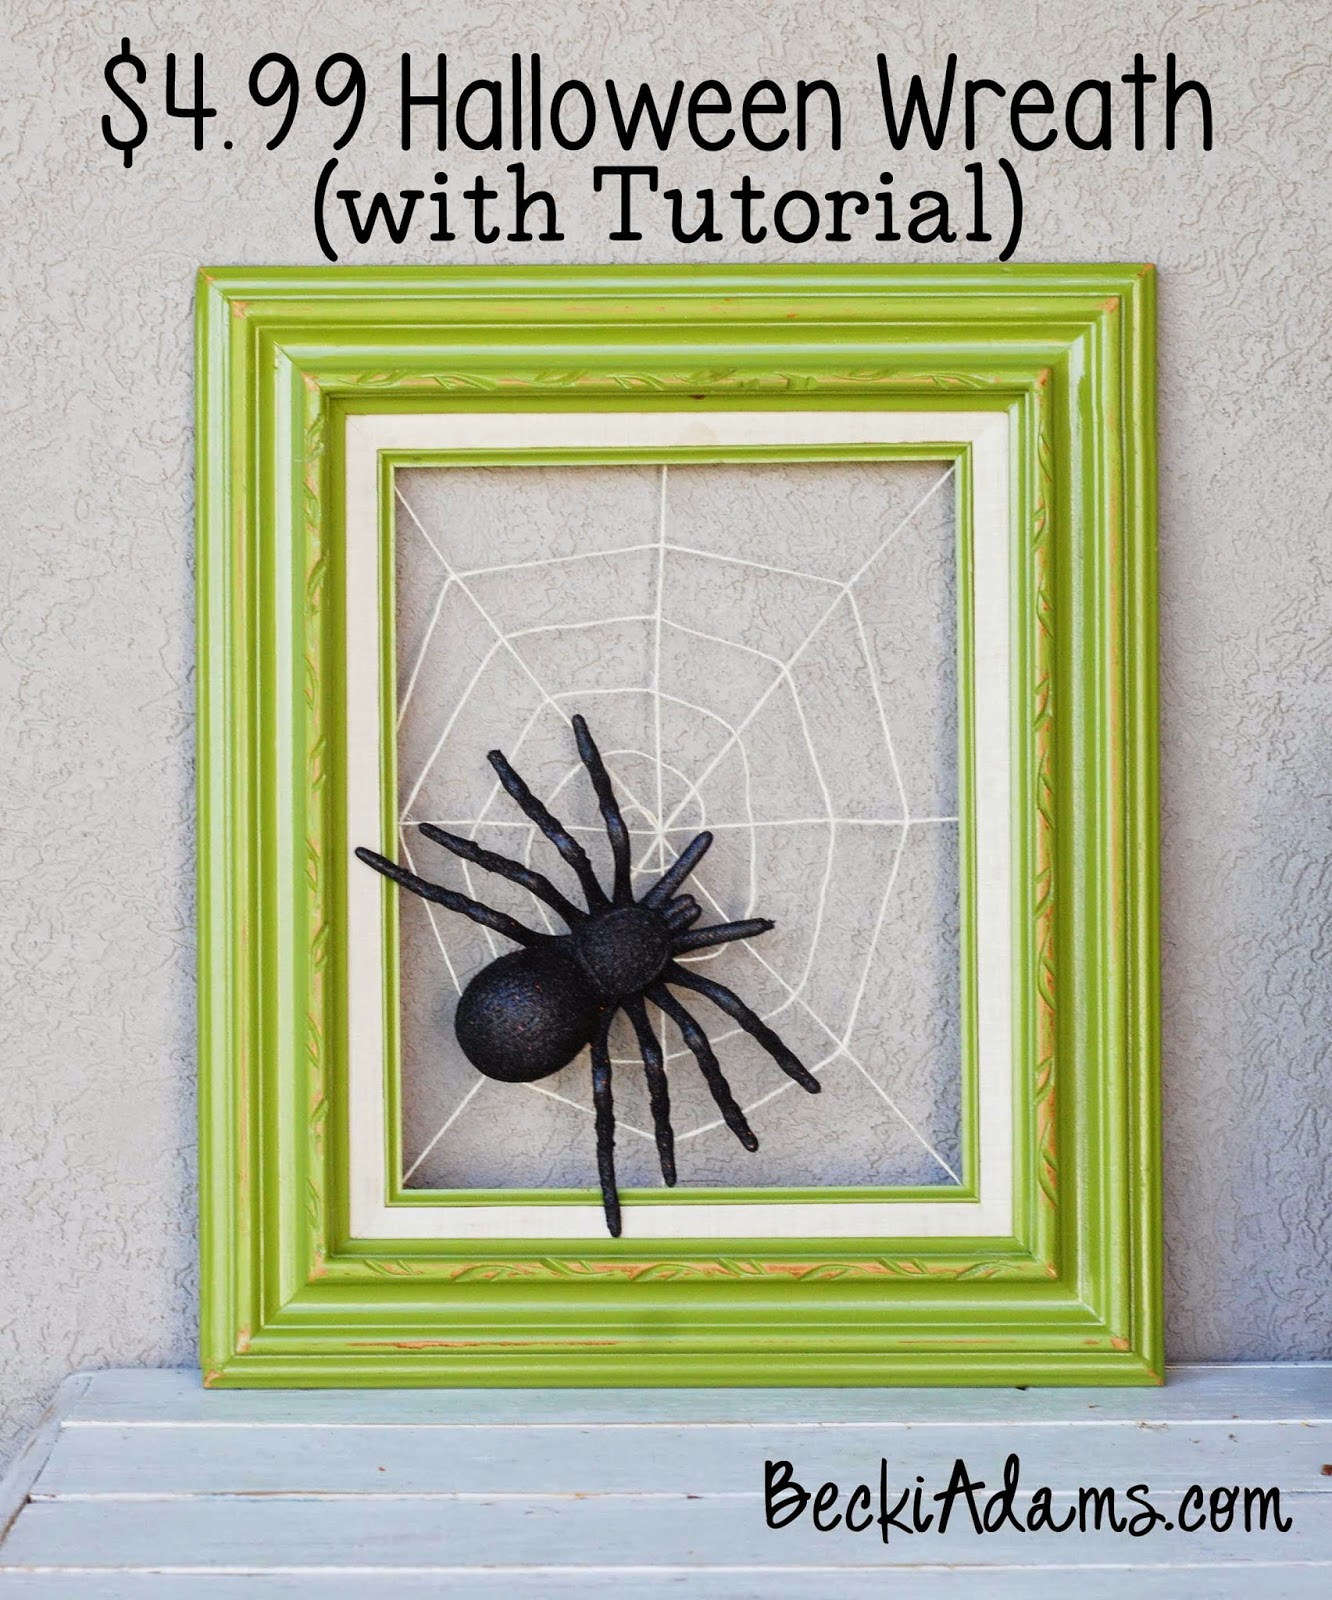 DIY Halloween wreath or artwork of a neon frame and spiderweb with a spider